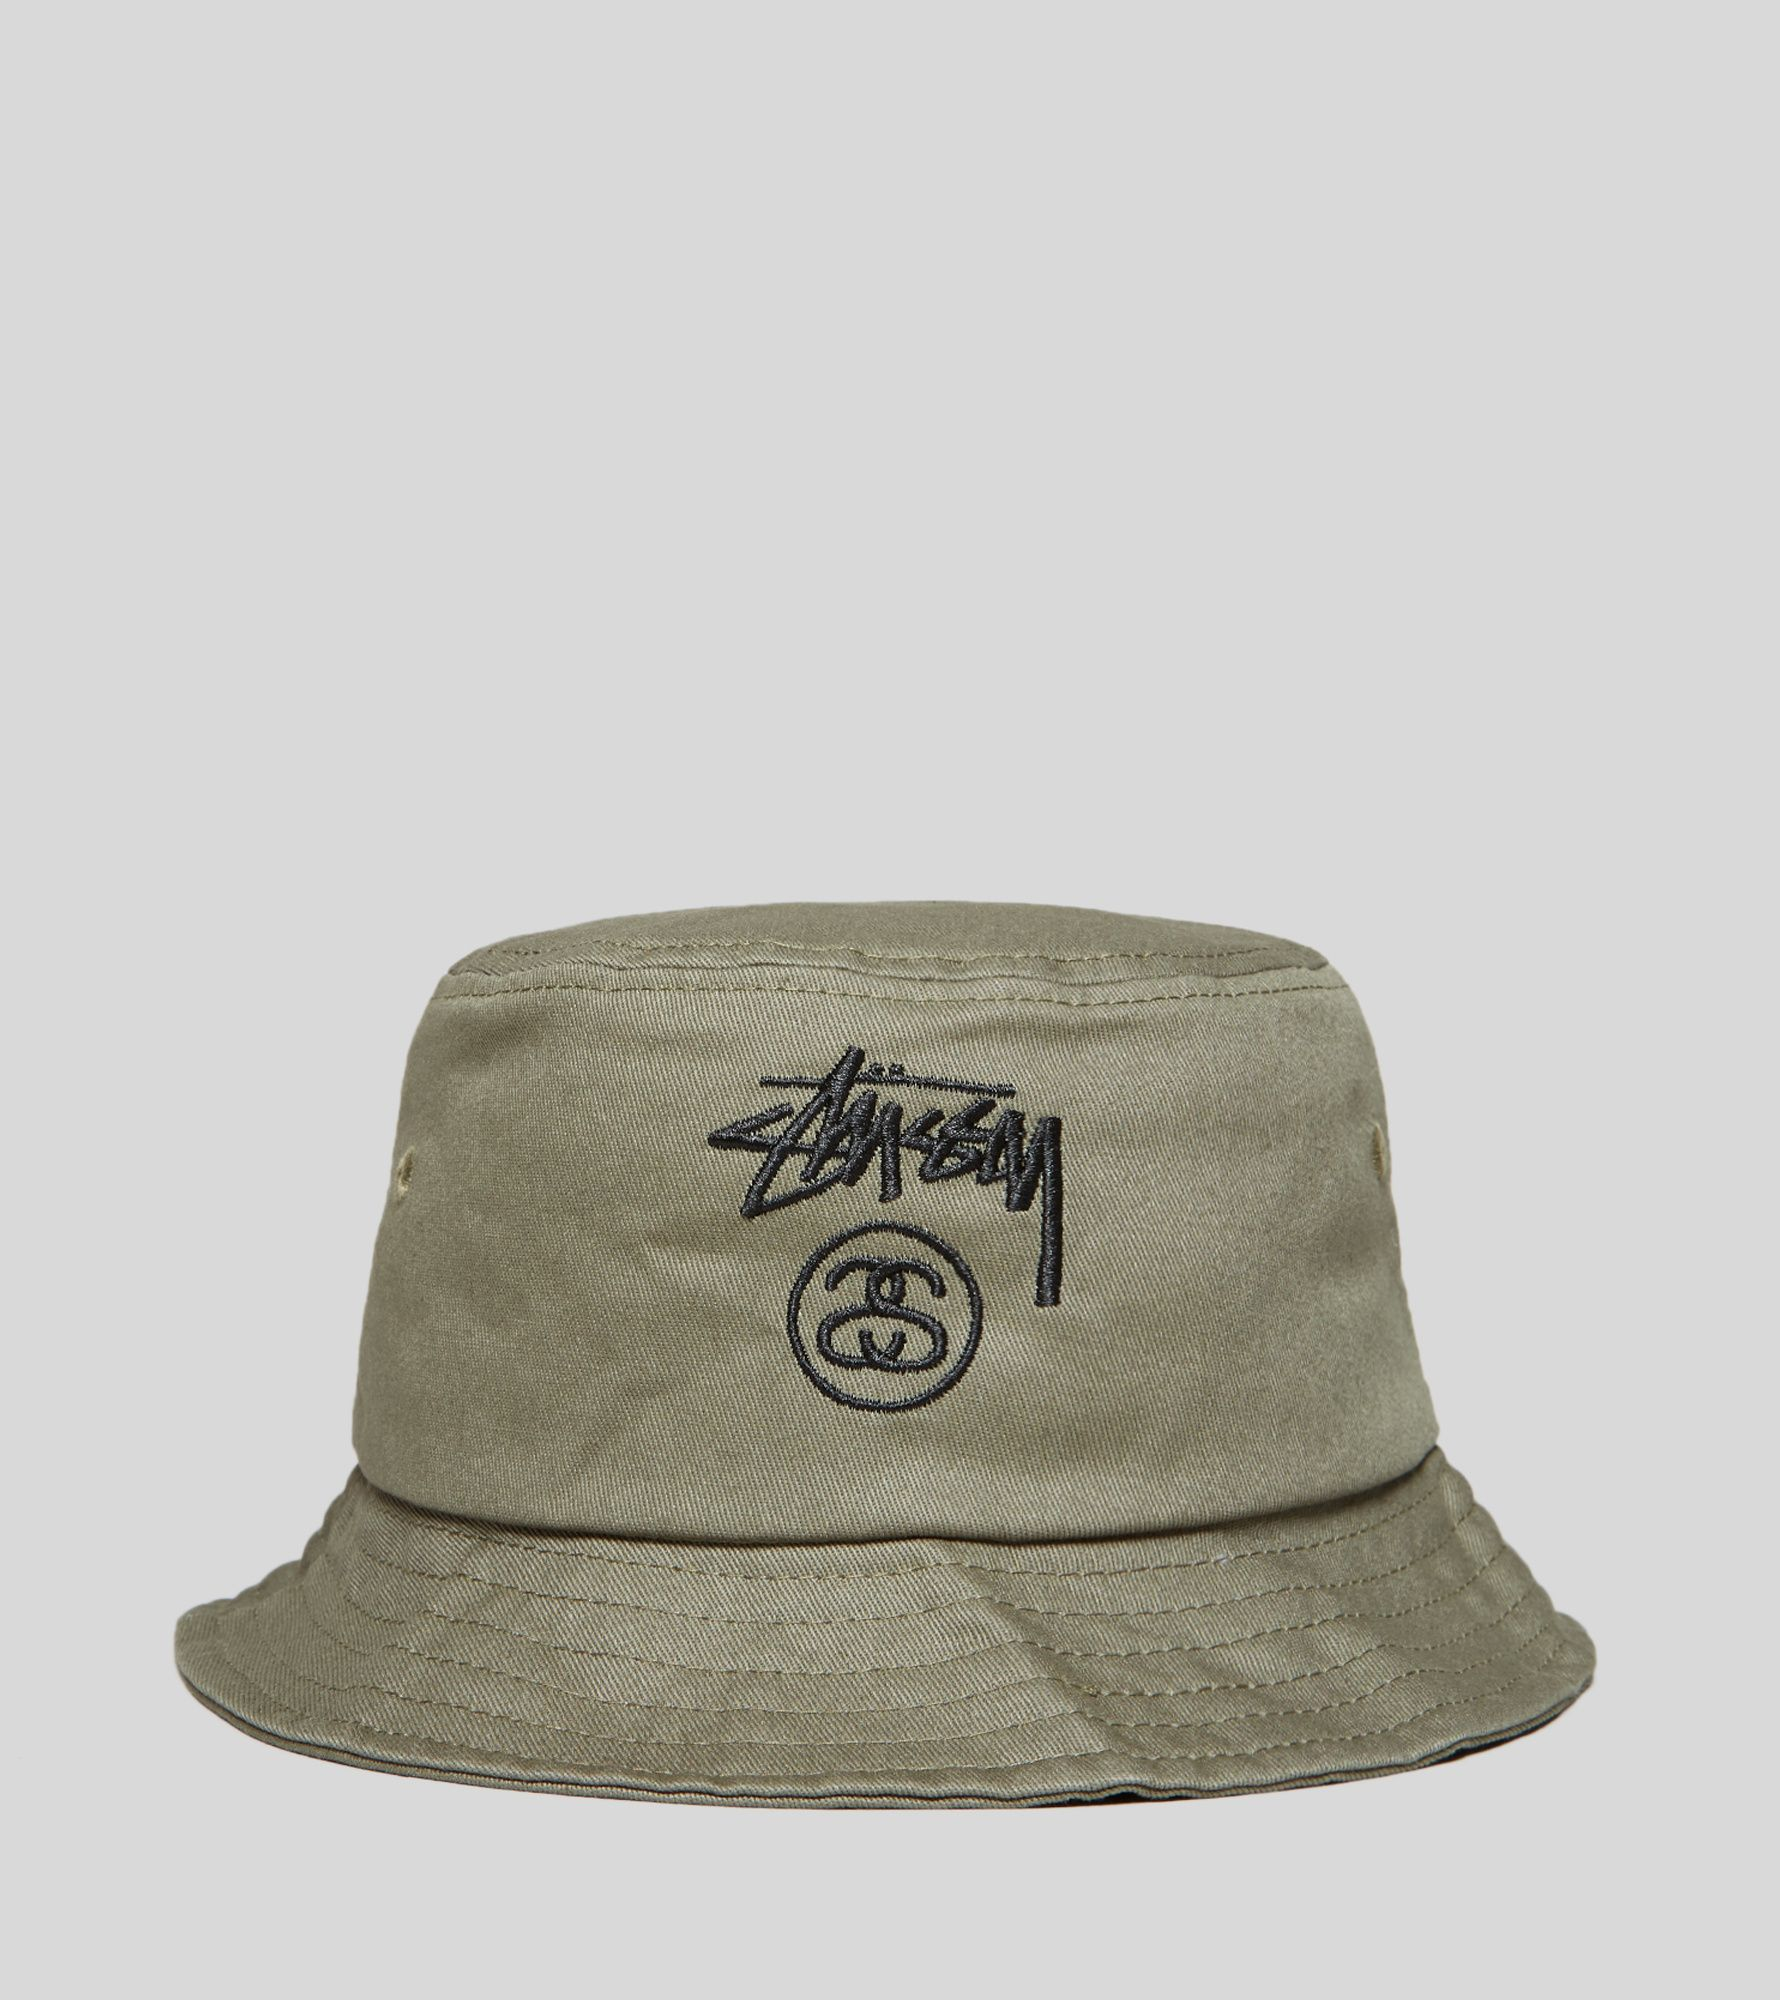 stussy bucket hat amazon - HD 1780×2000